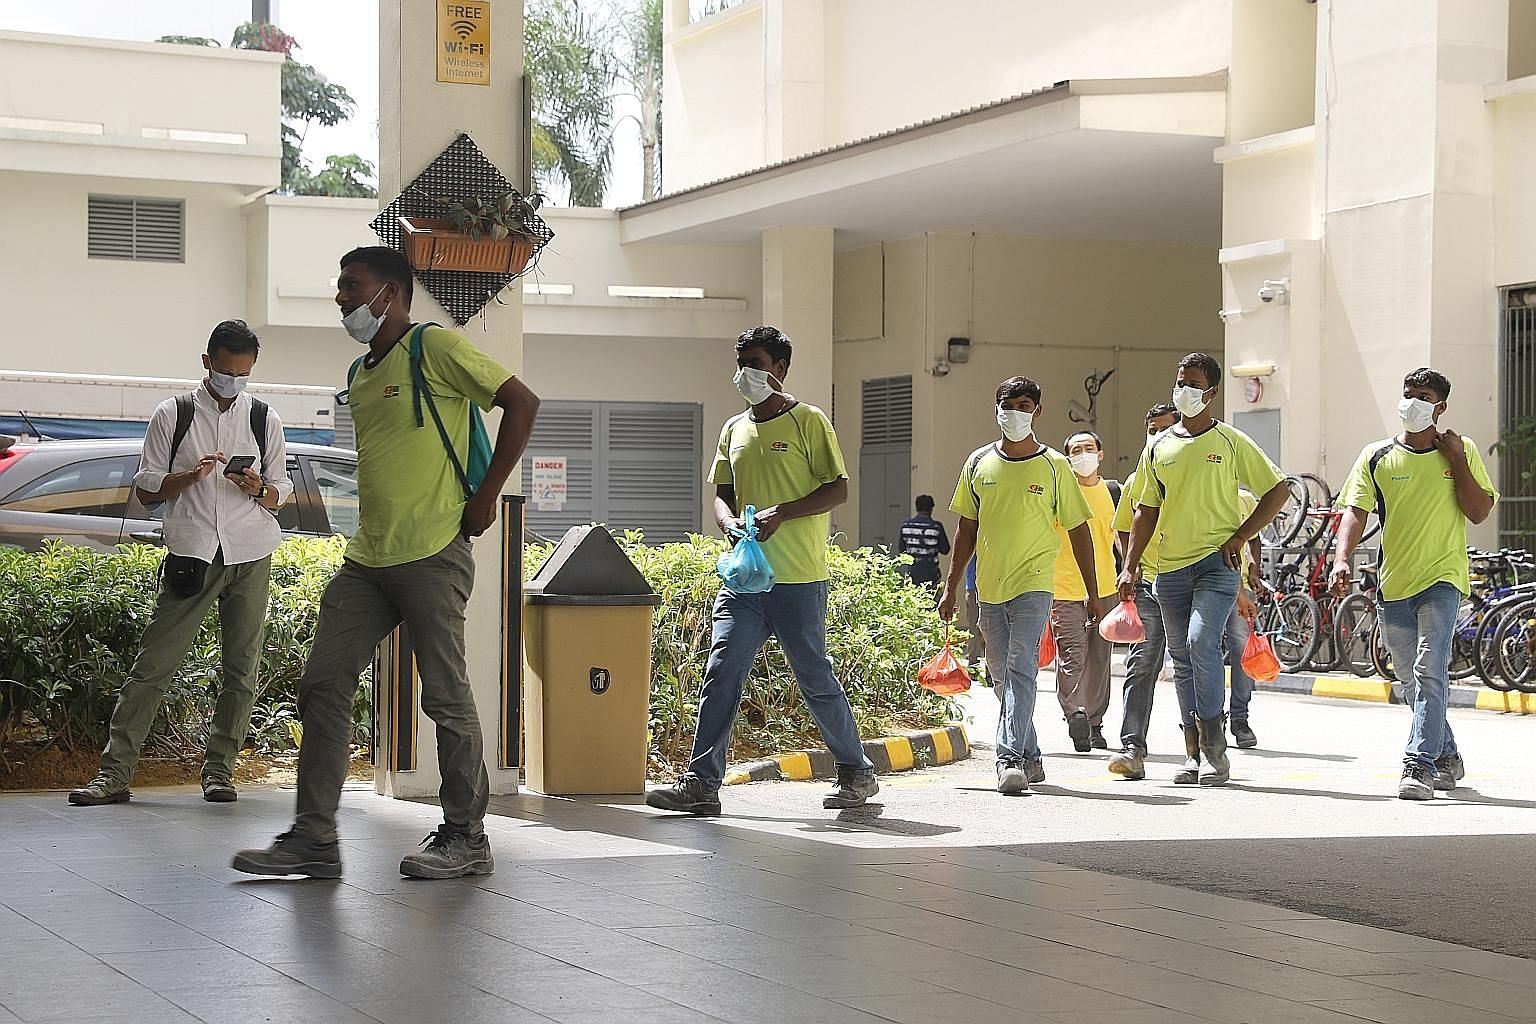 Workers staying at The Leo dormitory in Kaki Bukit were seen wearing masks yesterday. A Bangladeshi worker infected with the virus was said to have been housed there. The Ministry of Manpower said the worker had spent time only in his dorm room and a